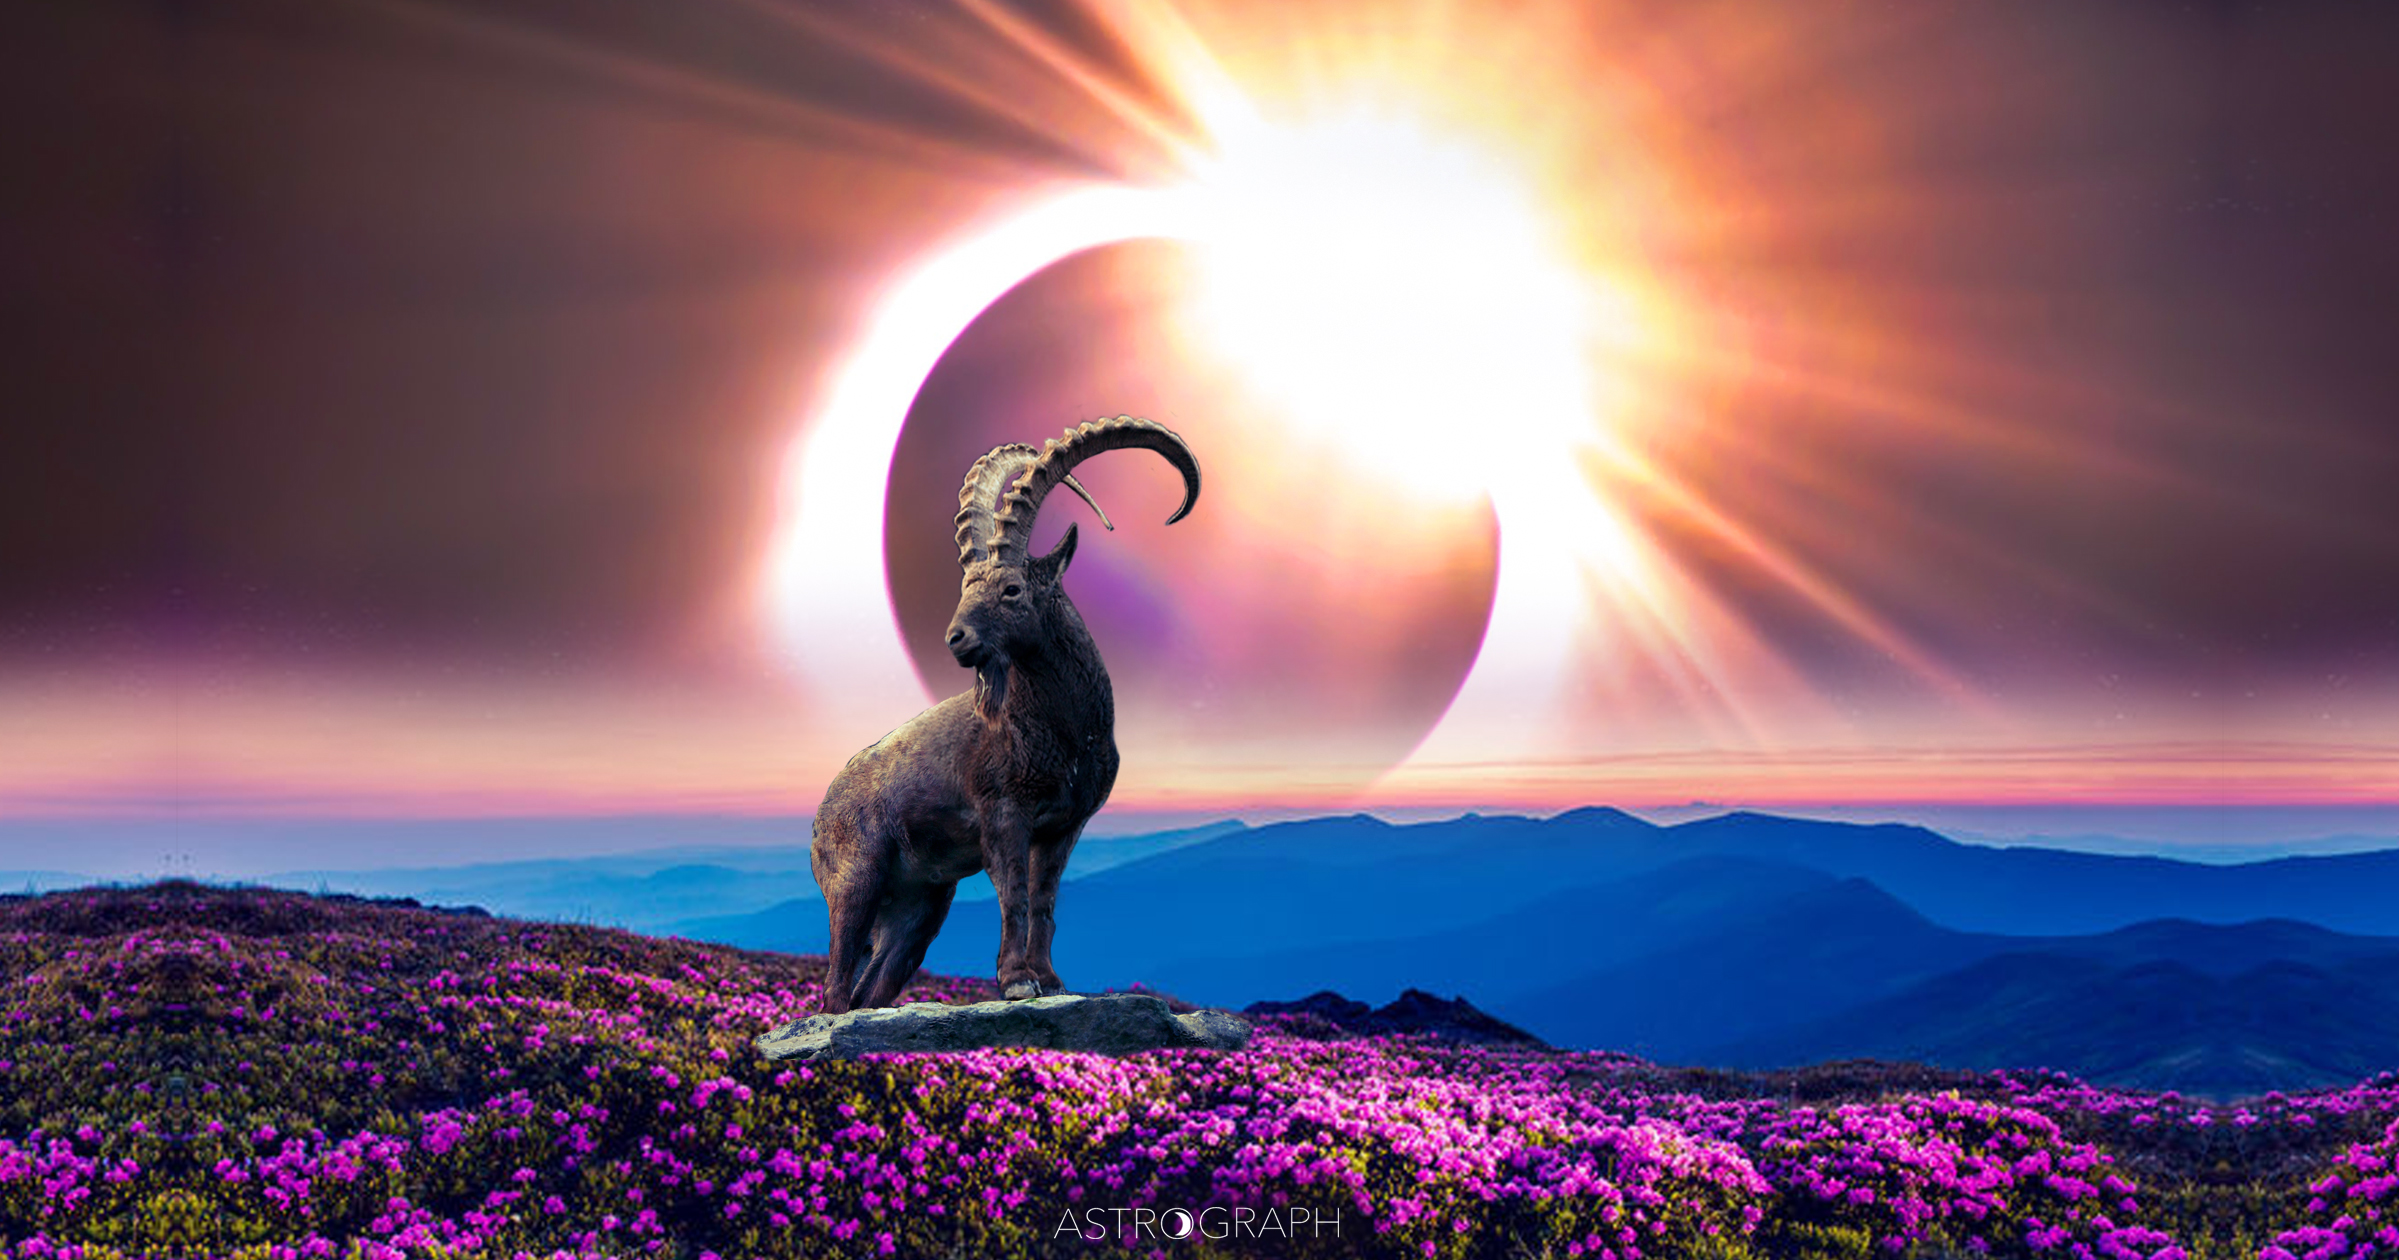 A New Moon Eclipse of Continued Transformational Intention